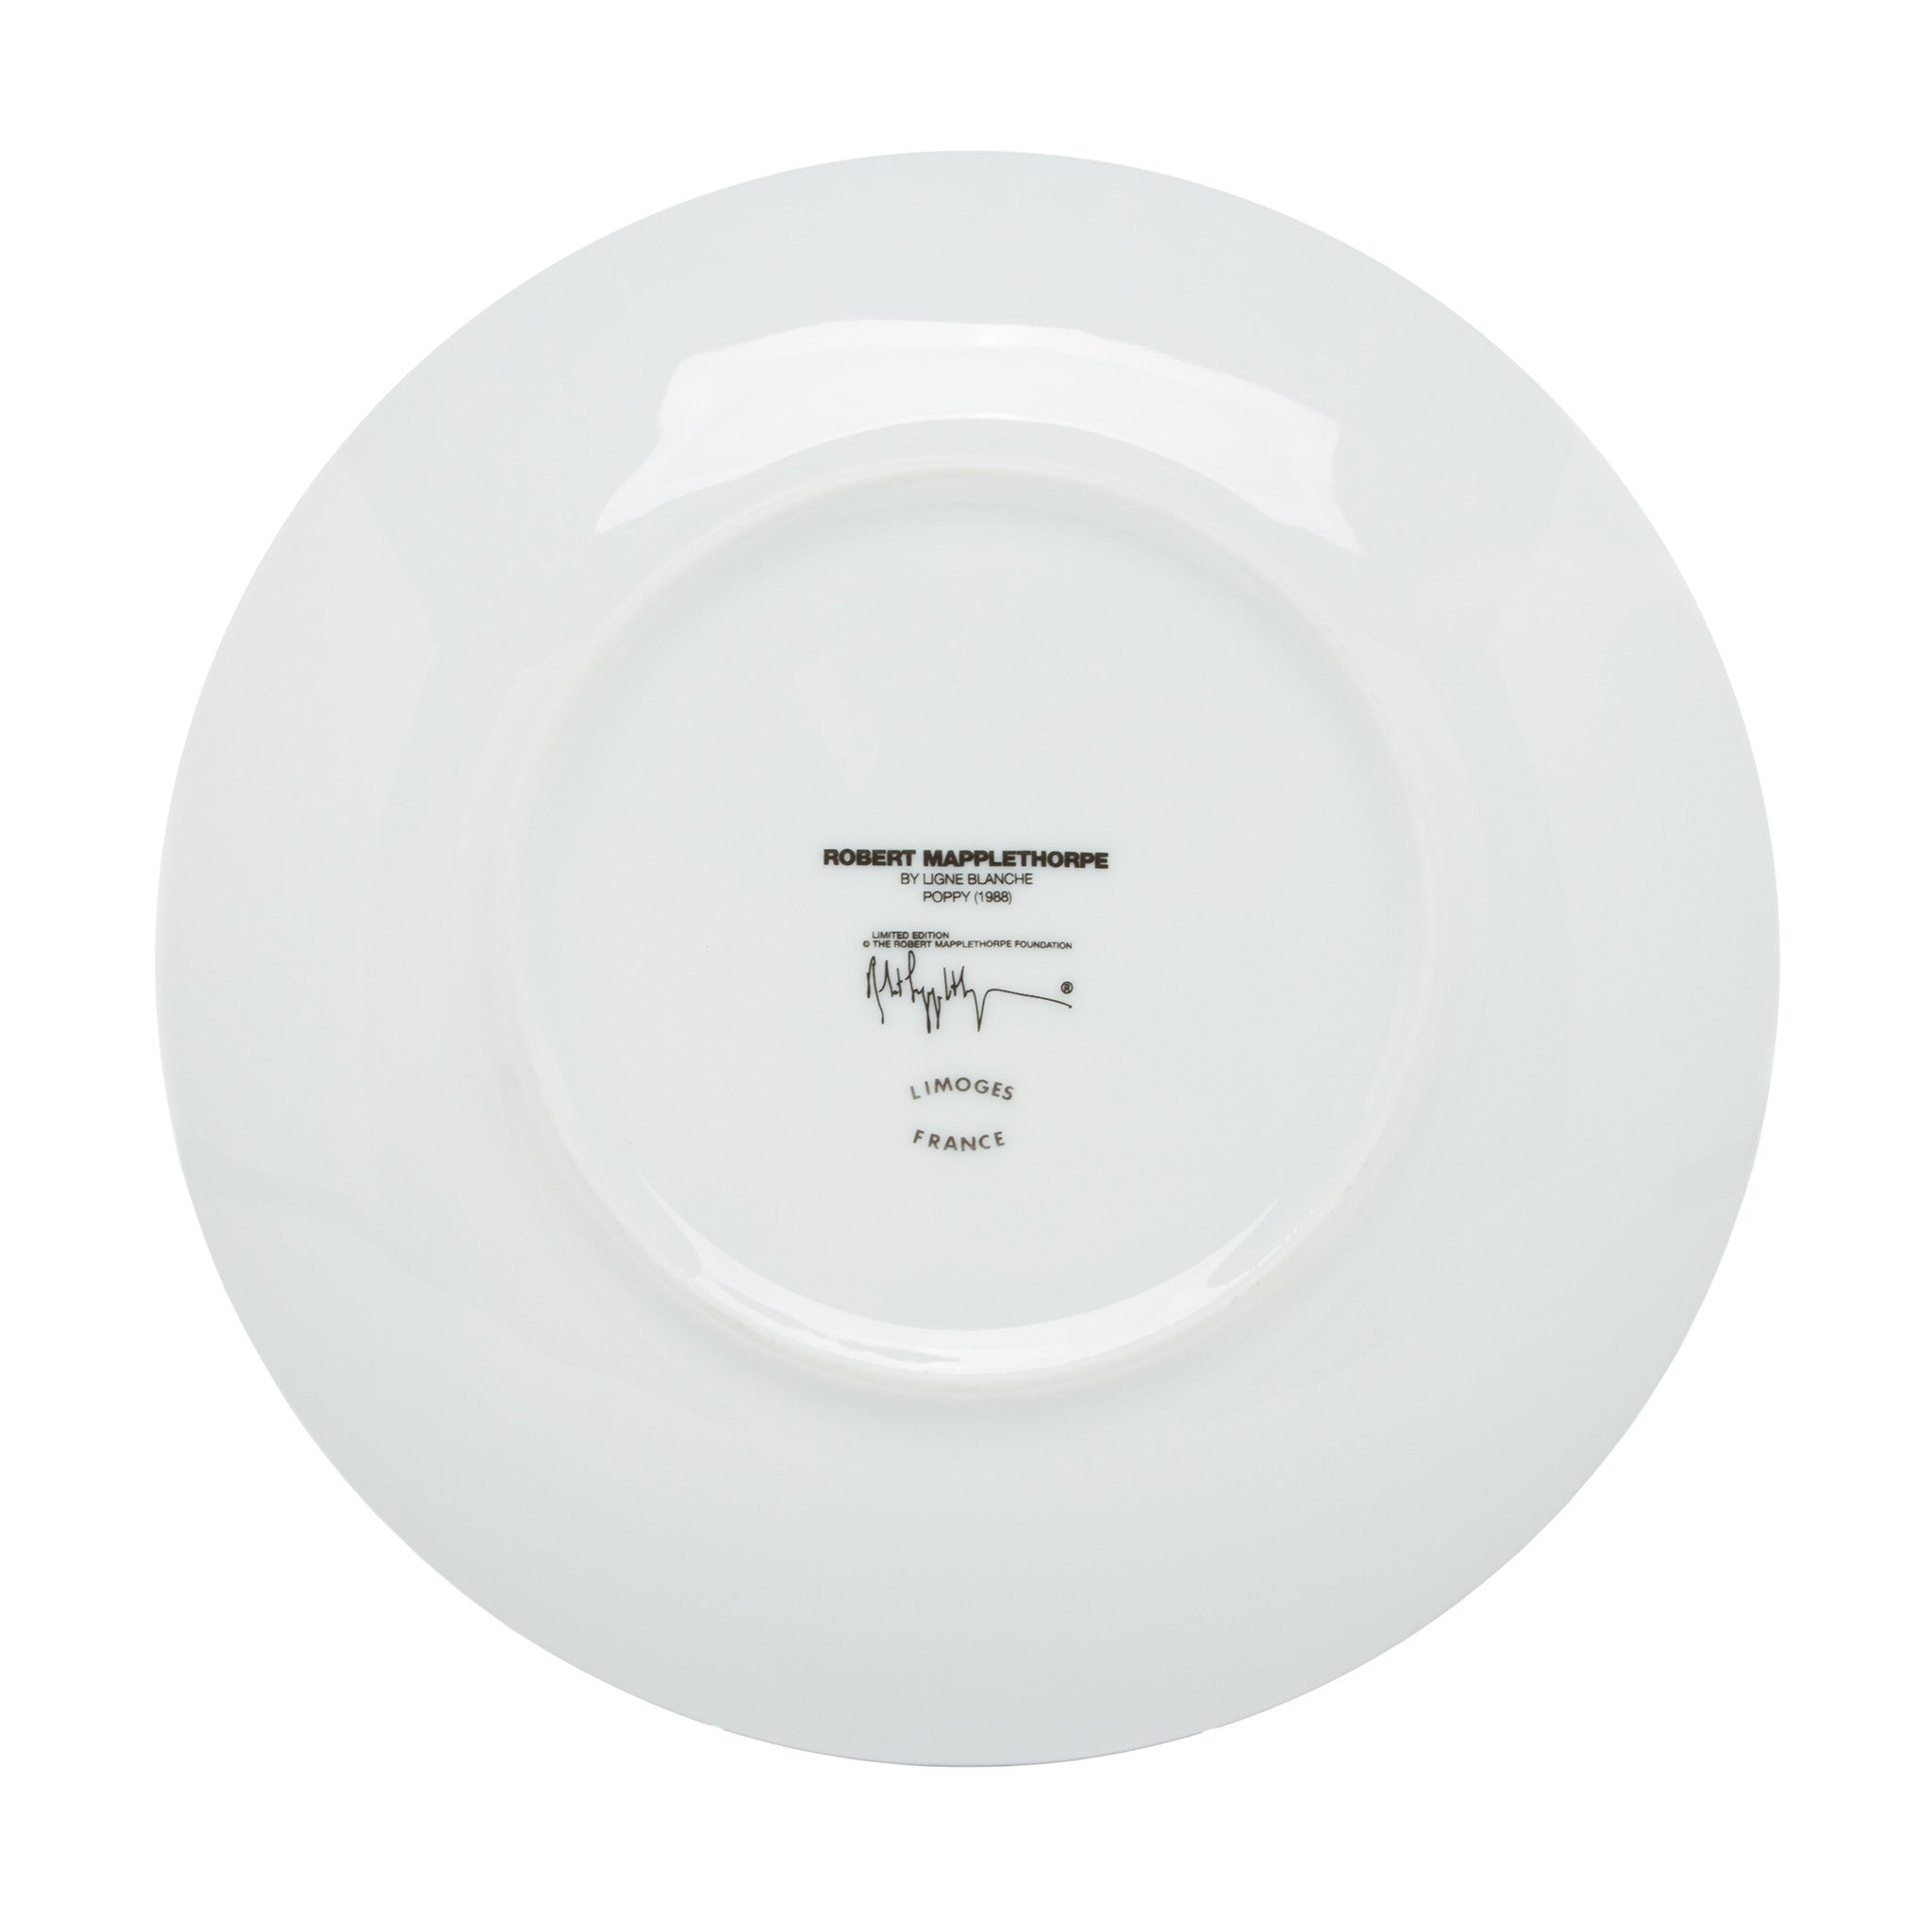 Limoges Porcelain Dinner Plate - Poppy by Robert Mapplethorpe  sc 1 st  The Getty Store & Limoges Porcelain Dinner Plate - Poppy by Robert Mapplethorpe u2013 The ...